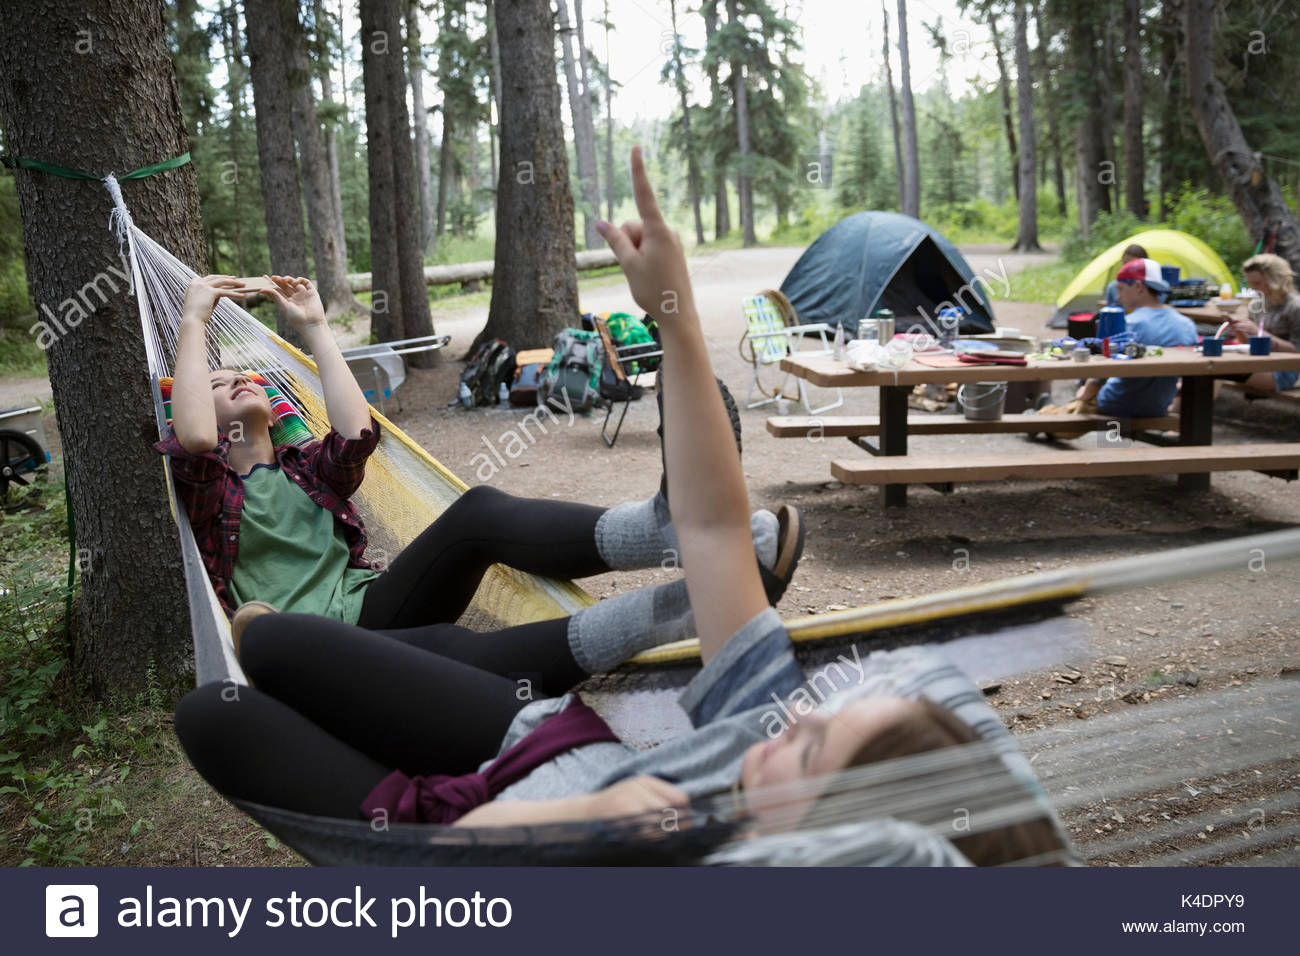 Teenage girl friends relaxing, laying in hammocks at outdoor school campsite - Stock Image